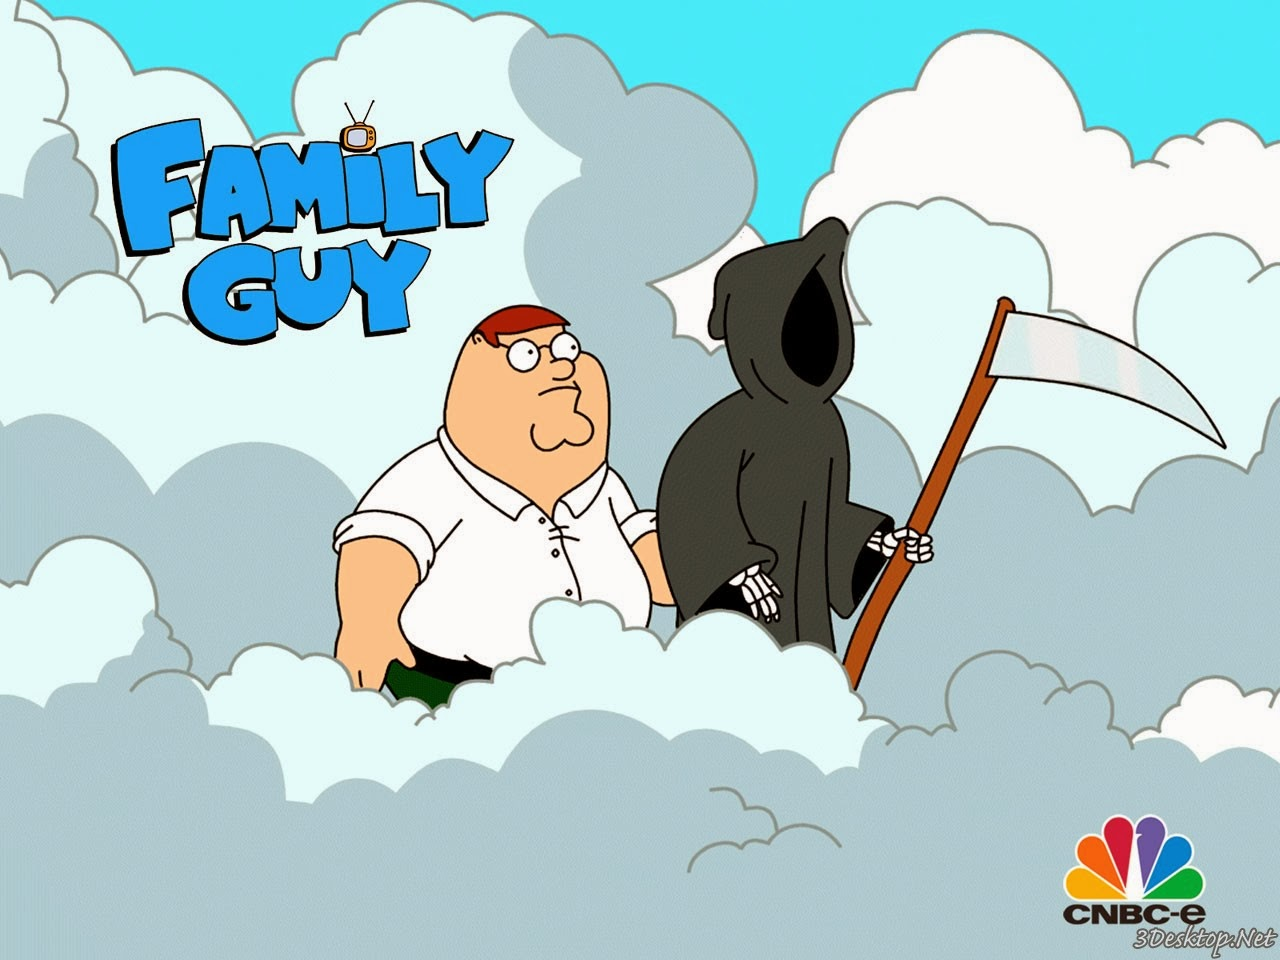 Family Guy Wallpaper Hd 1440900 25600 Hd Wallpaper Res 1440x900 1280x960